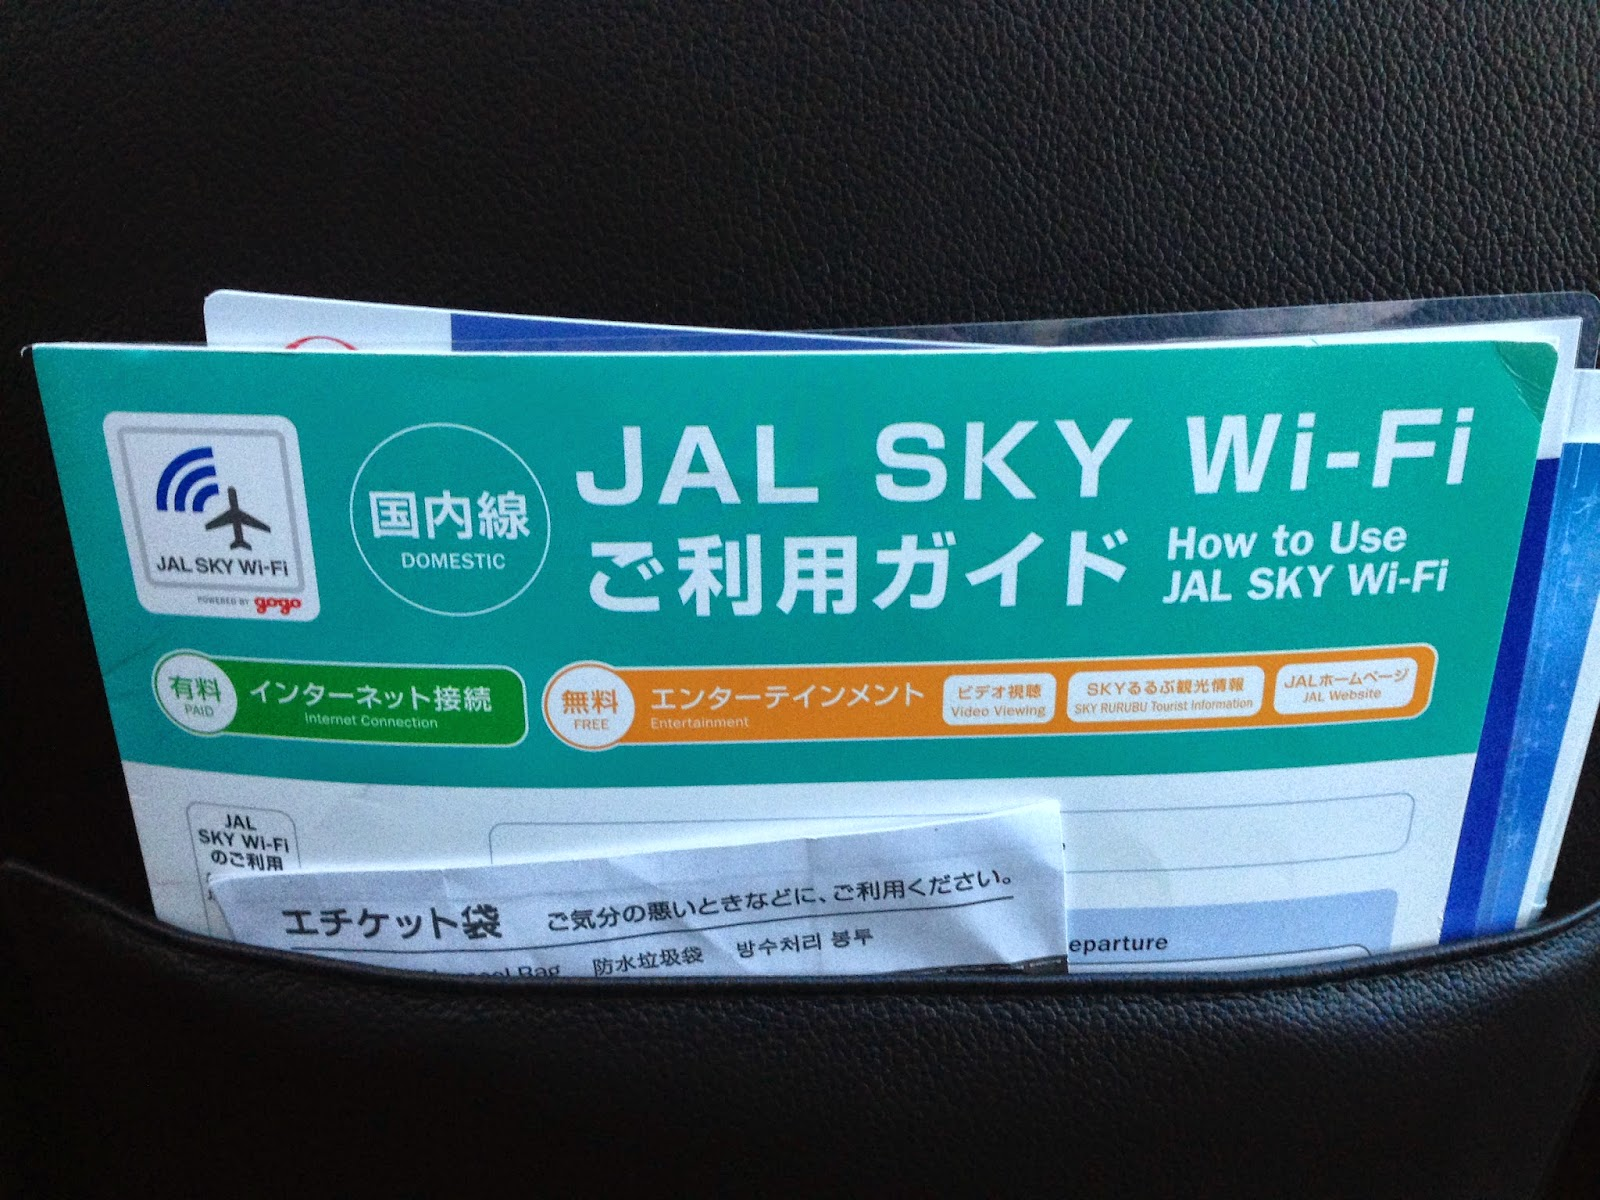 jal-sky-wifi-explanation